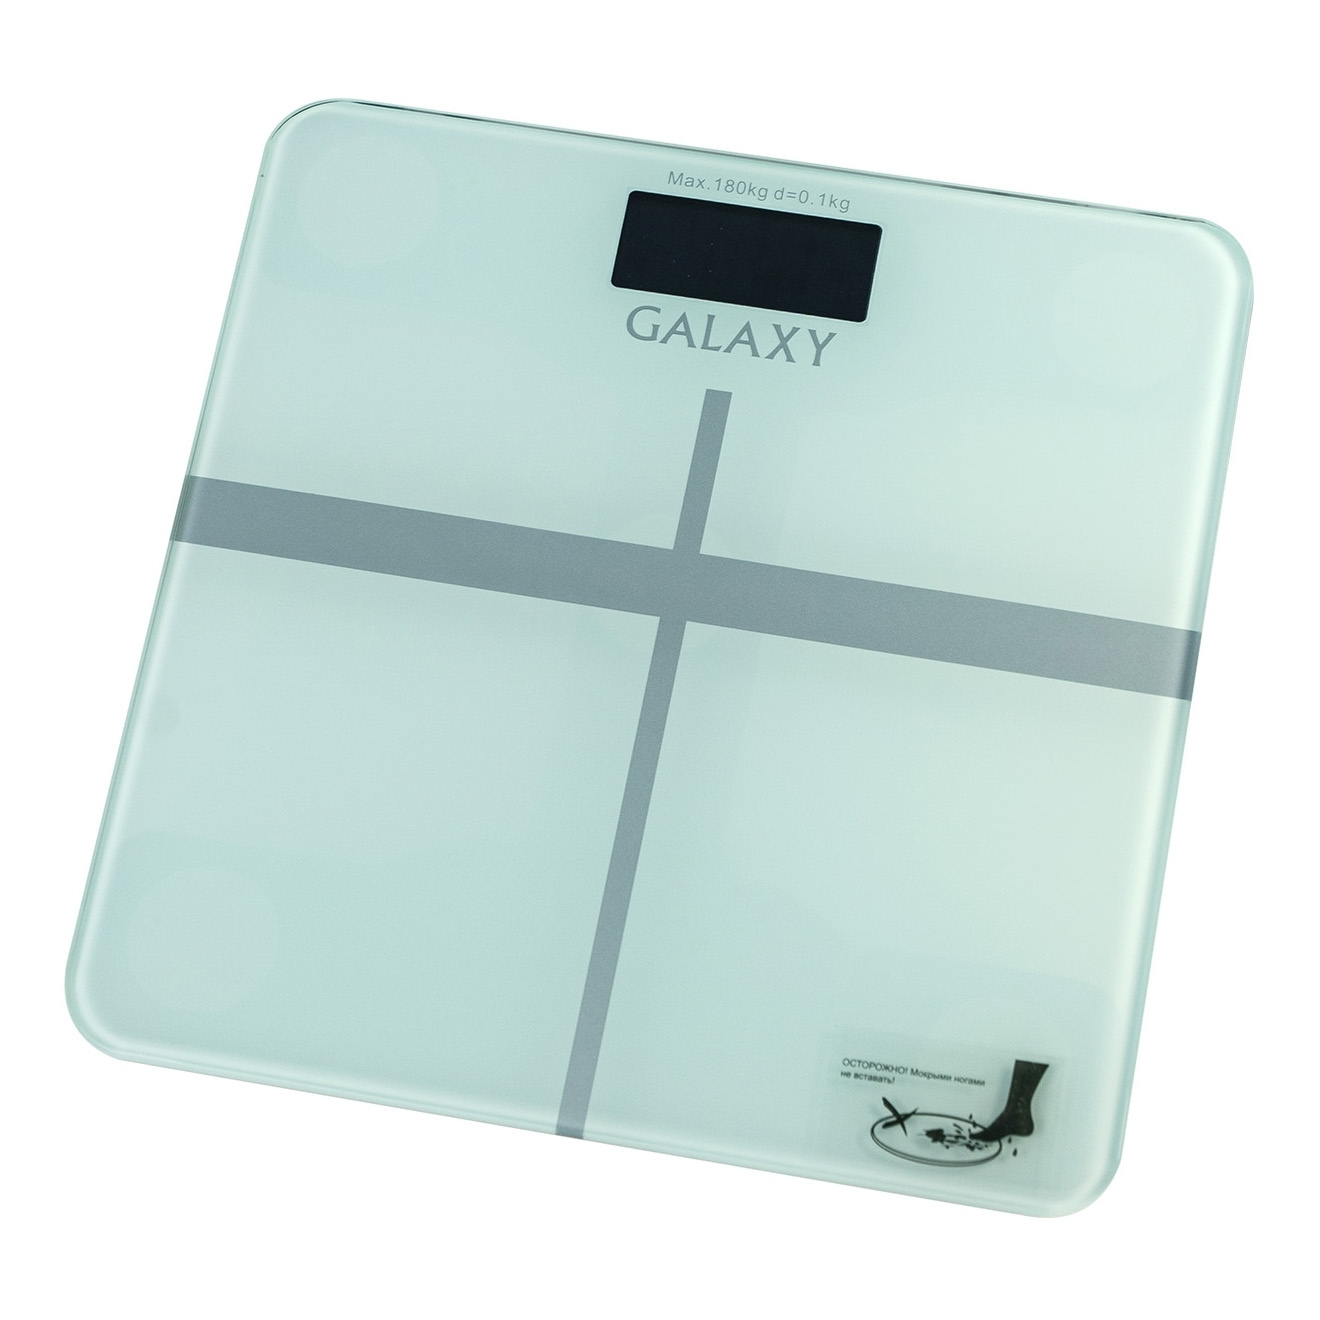 Scale floor Galaxy GL 4808 (Maximum load up to 180кг, measurement accuracy of 100 grams, LCD-дисплей, ultrathin design, автовкл/None, сверхточная touch sensor system) black new 7 85 inch regulus 2 itwgn785 tablet touch screen panel digitizer glass sensor replacement free shipping